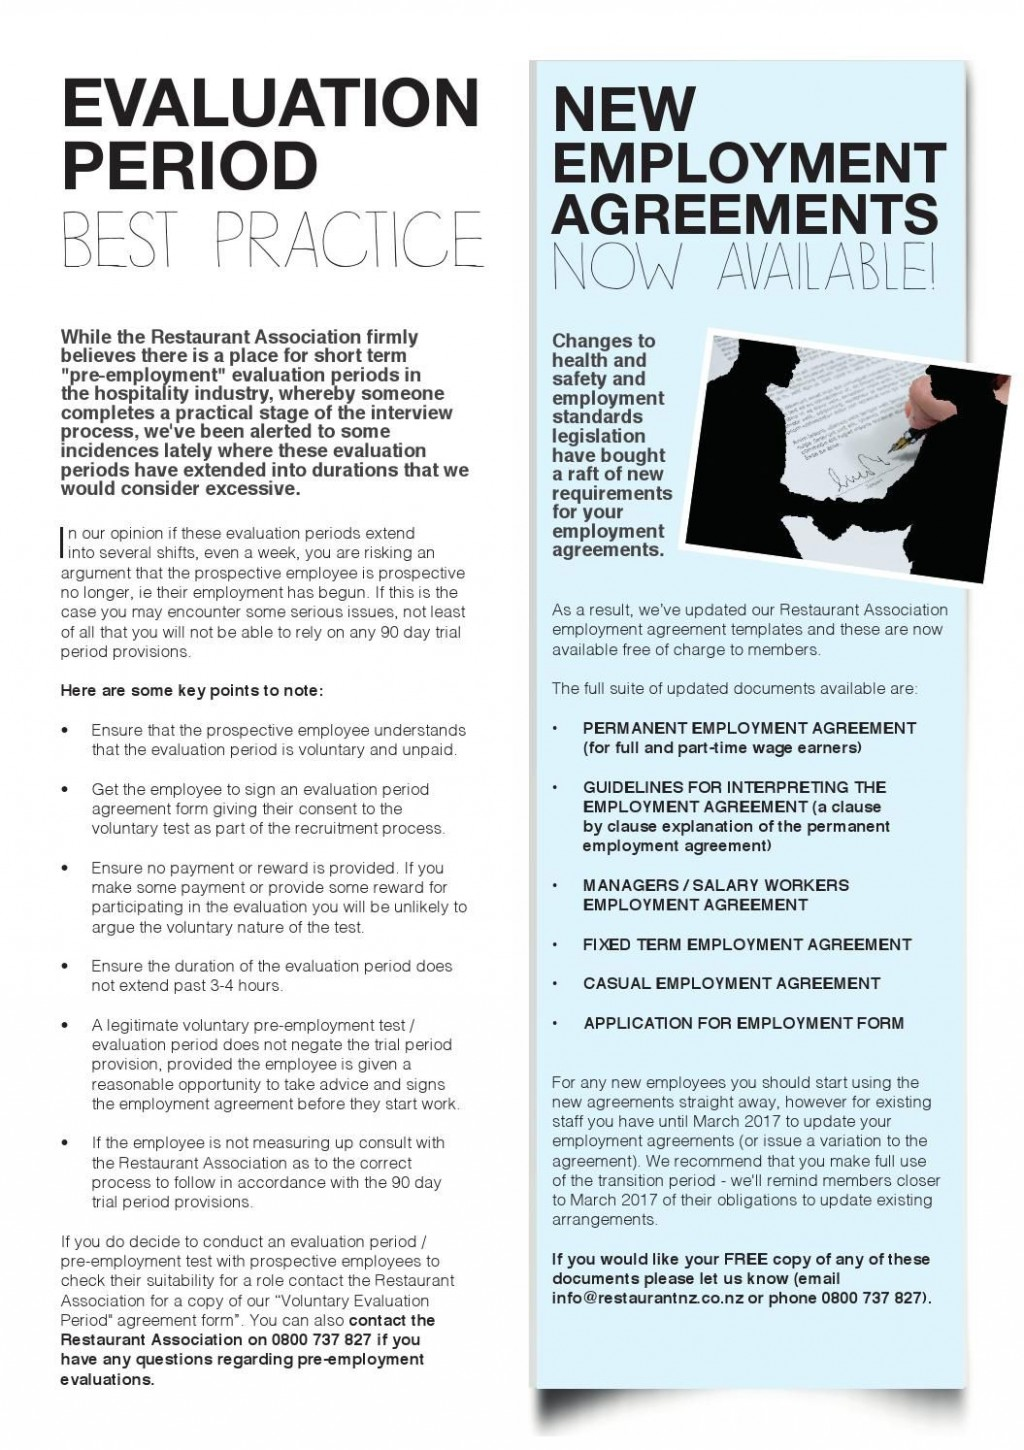 008 Archaicawful Free Casual Employment Contract Template Nz Design Large